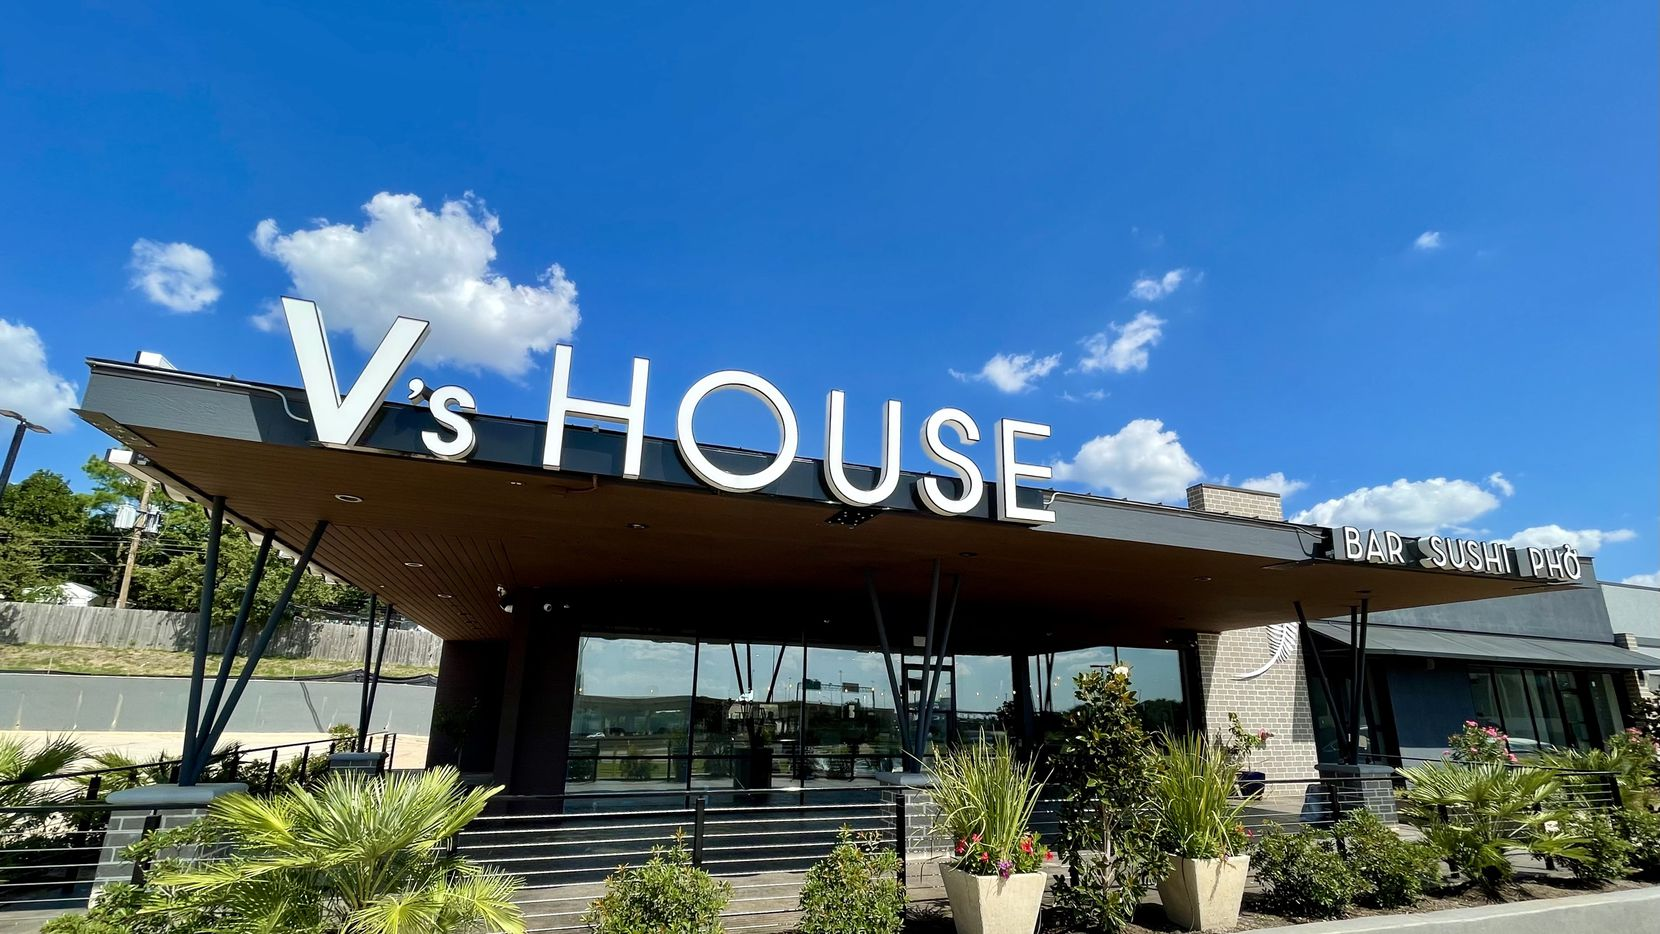 V's House is slated to open this fall in North Richland Hills. The 5,000-square-foot restaurant will have a patio and serve alcohol.